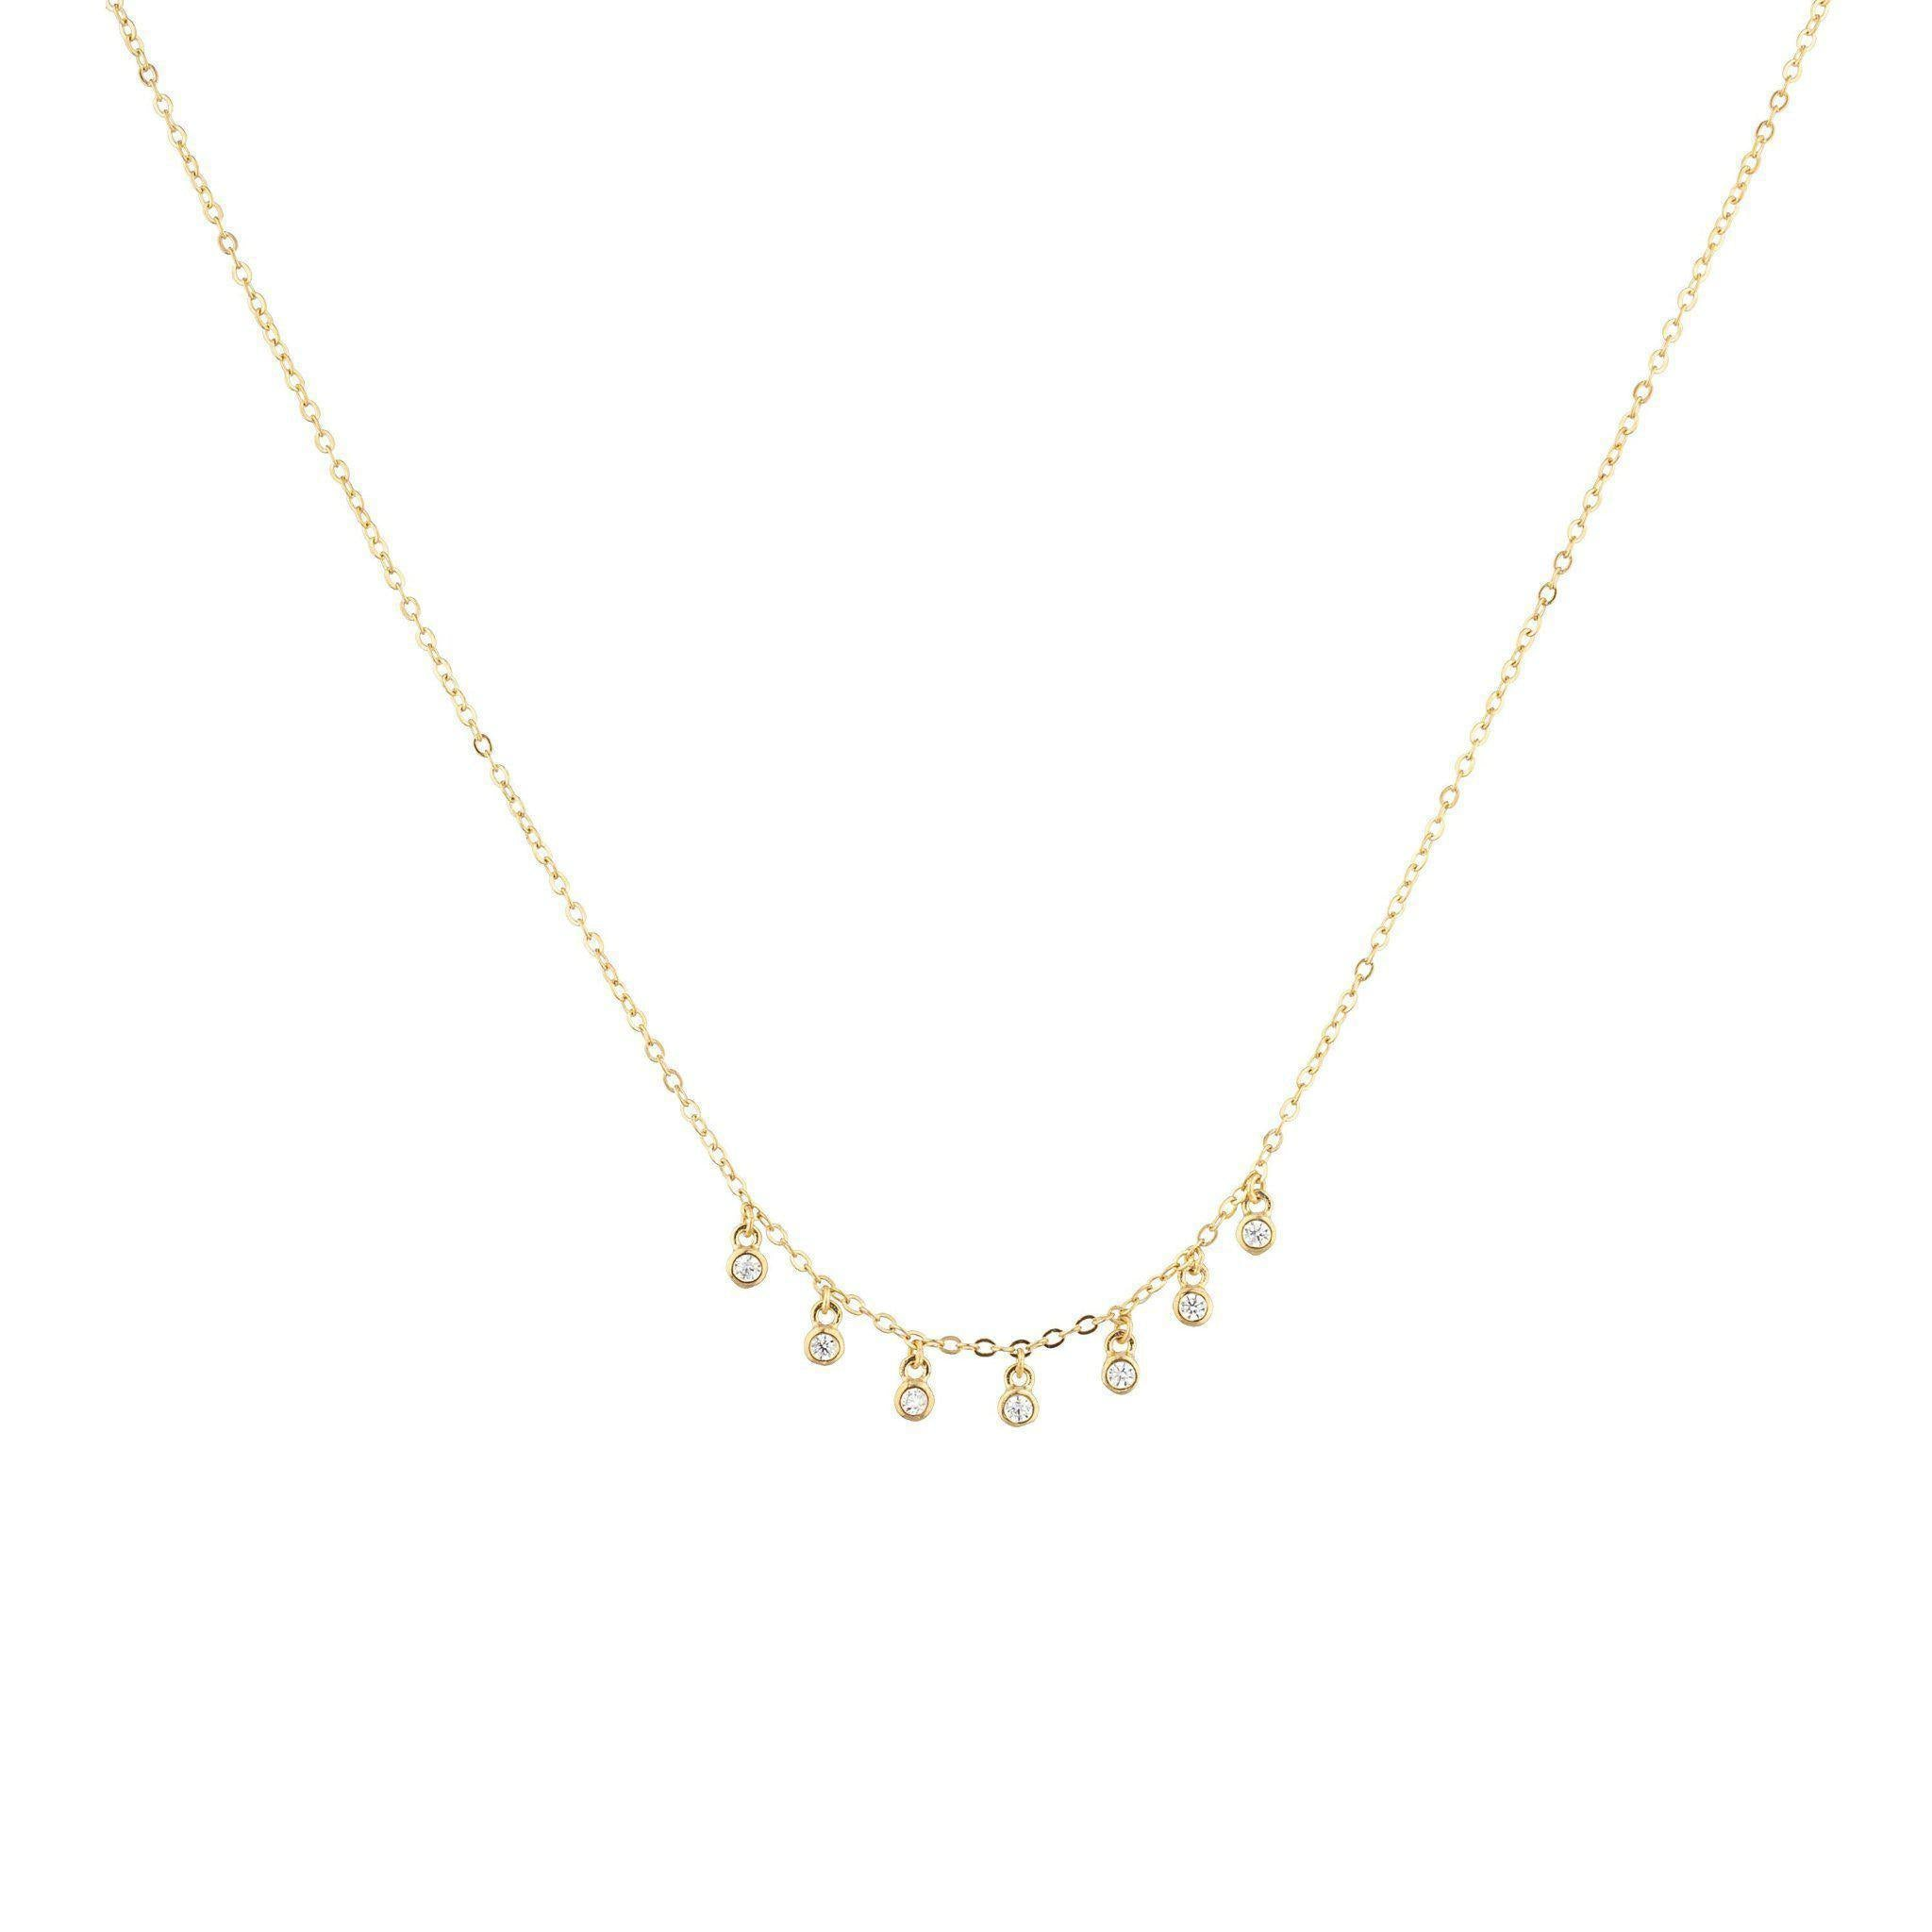 Aerin Charm Chain Necklace - Taylor Adorn